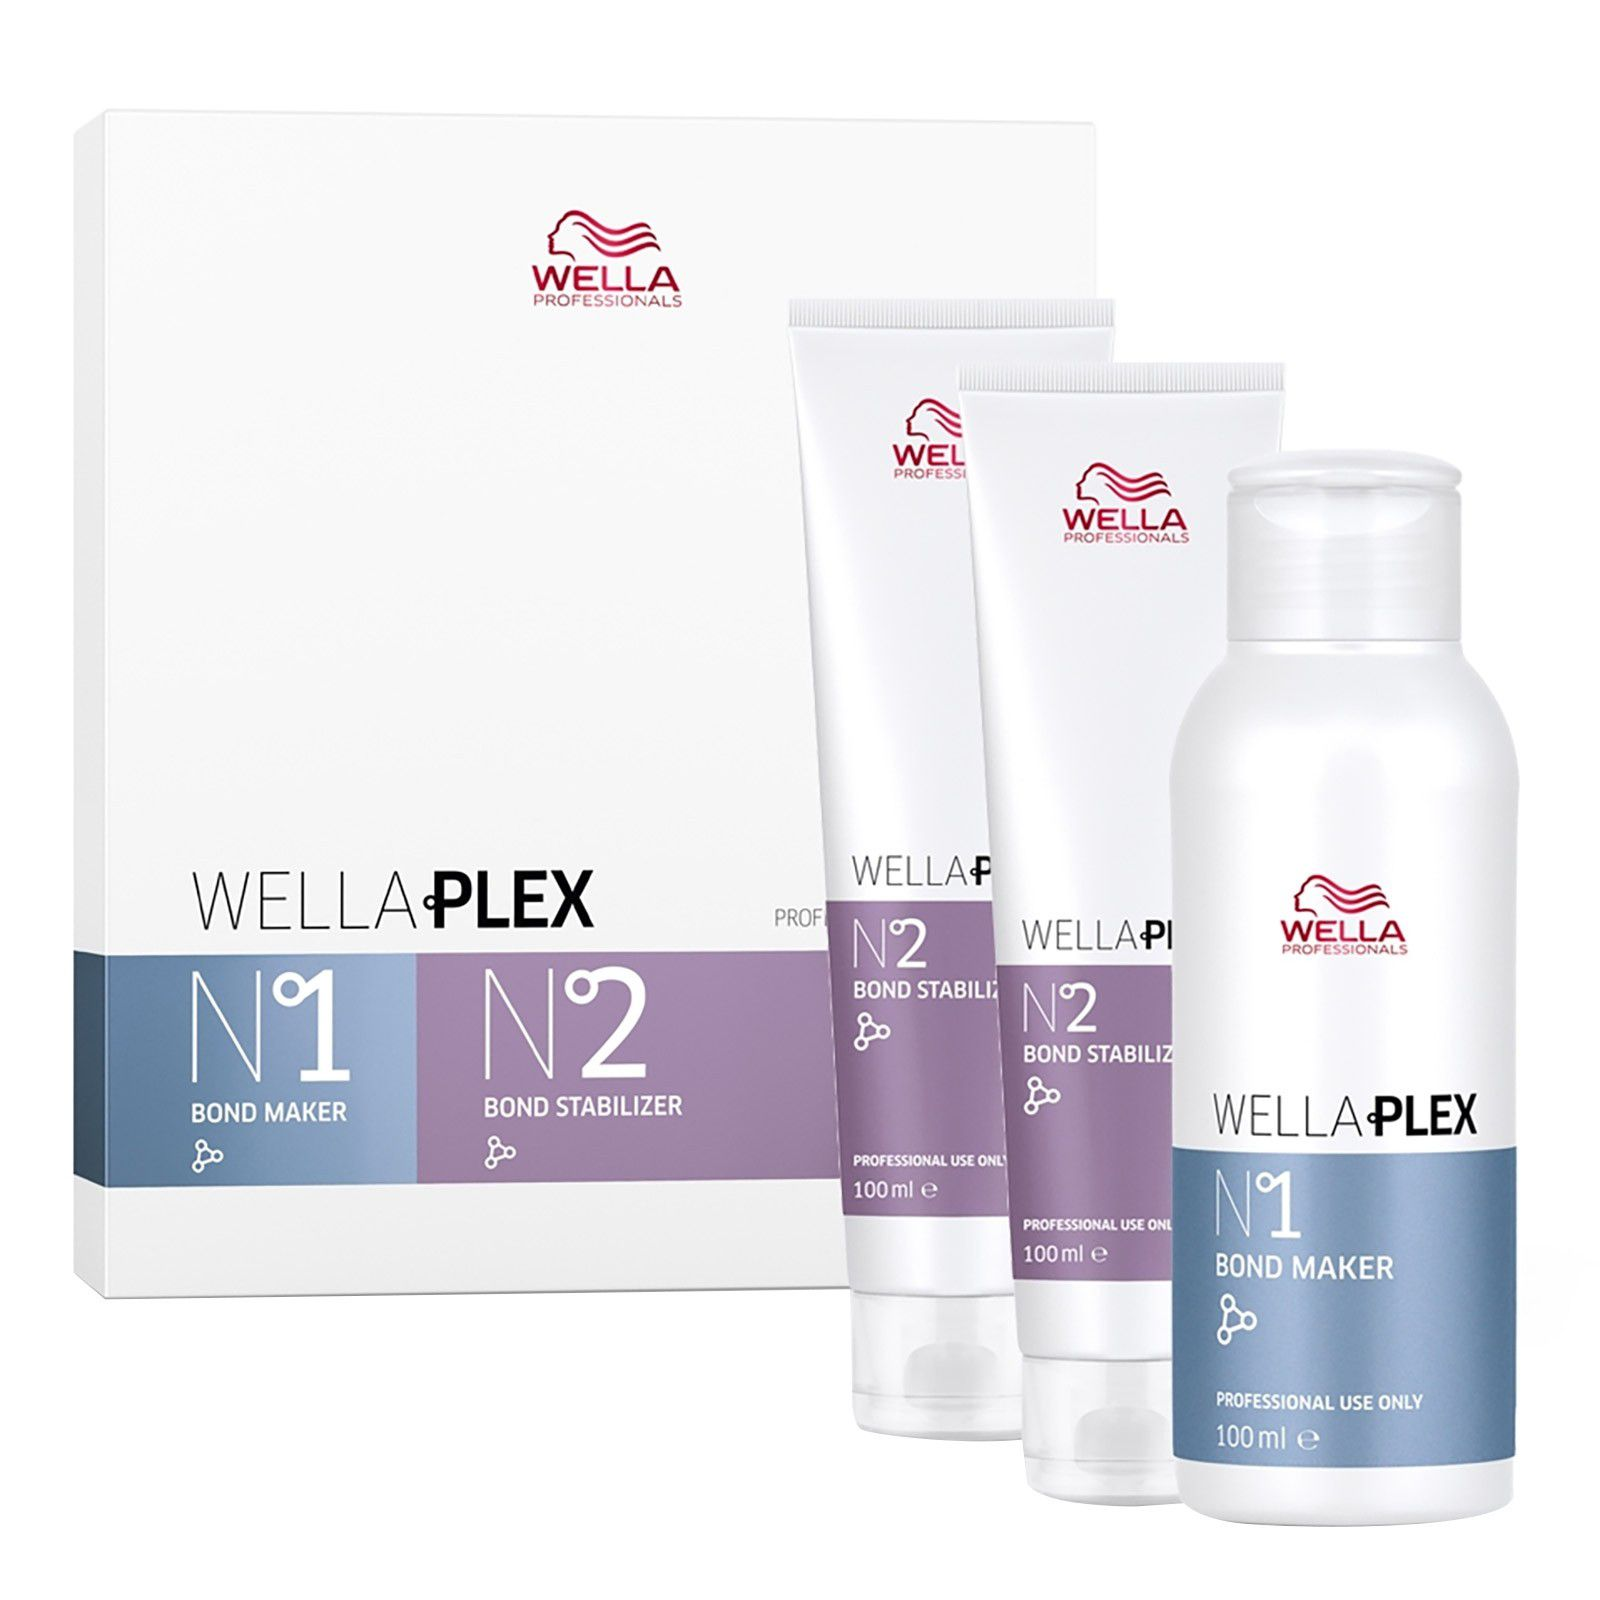 Kit Wella Plex Small - 1 Bond Maker num. 1 e 2 Bond Stalizer num. 2